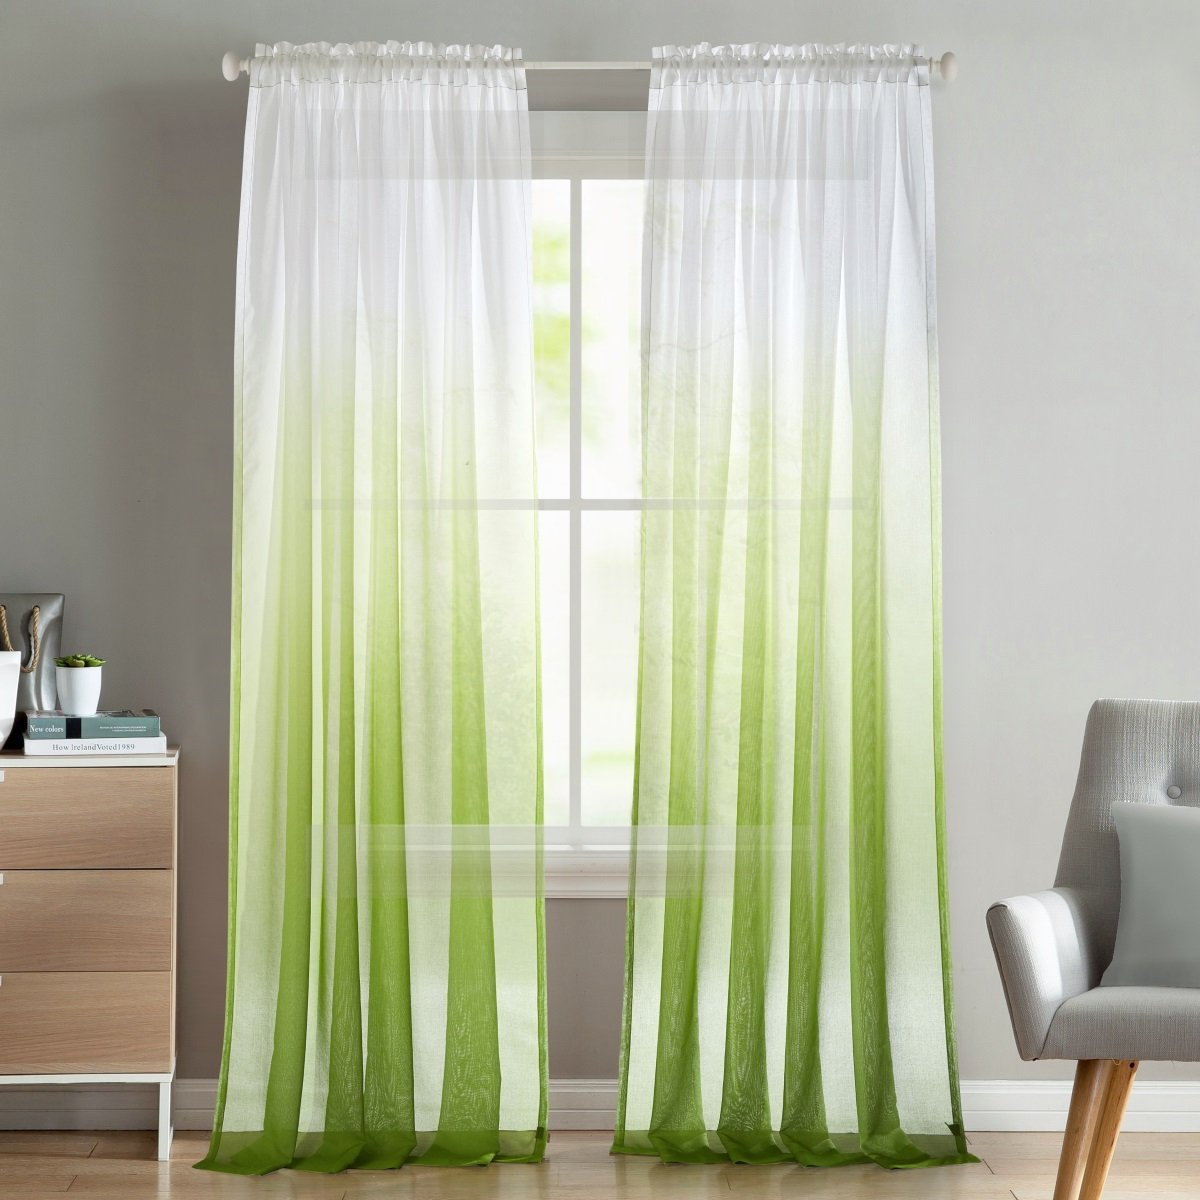 "LoyoLady Mint Shadow Gradient Voile Rod Pocket Sheer Curtains Drapes Window Treatment, Extra Size 100"" W x 84"" L, 1 Panel"